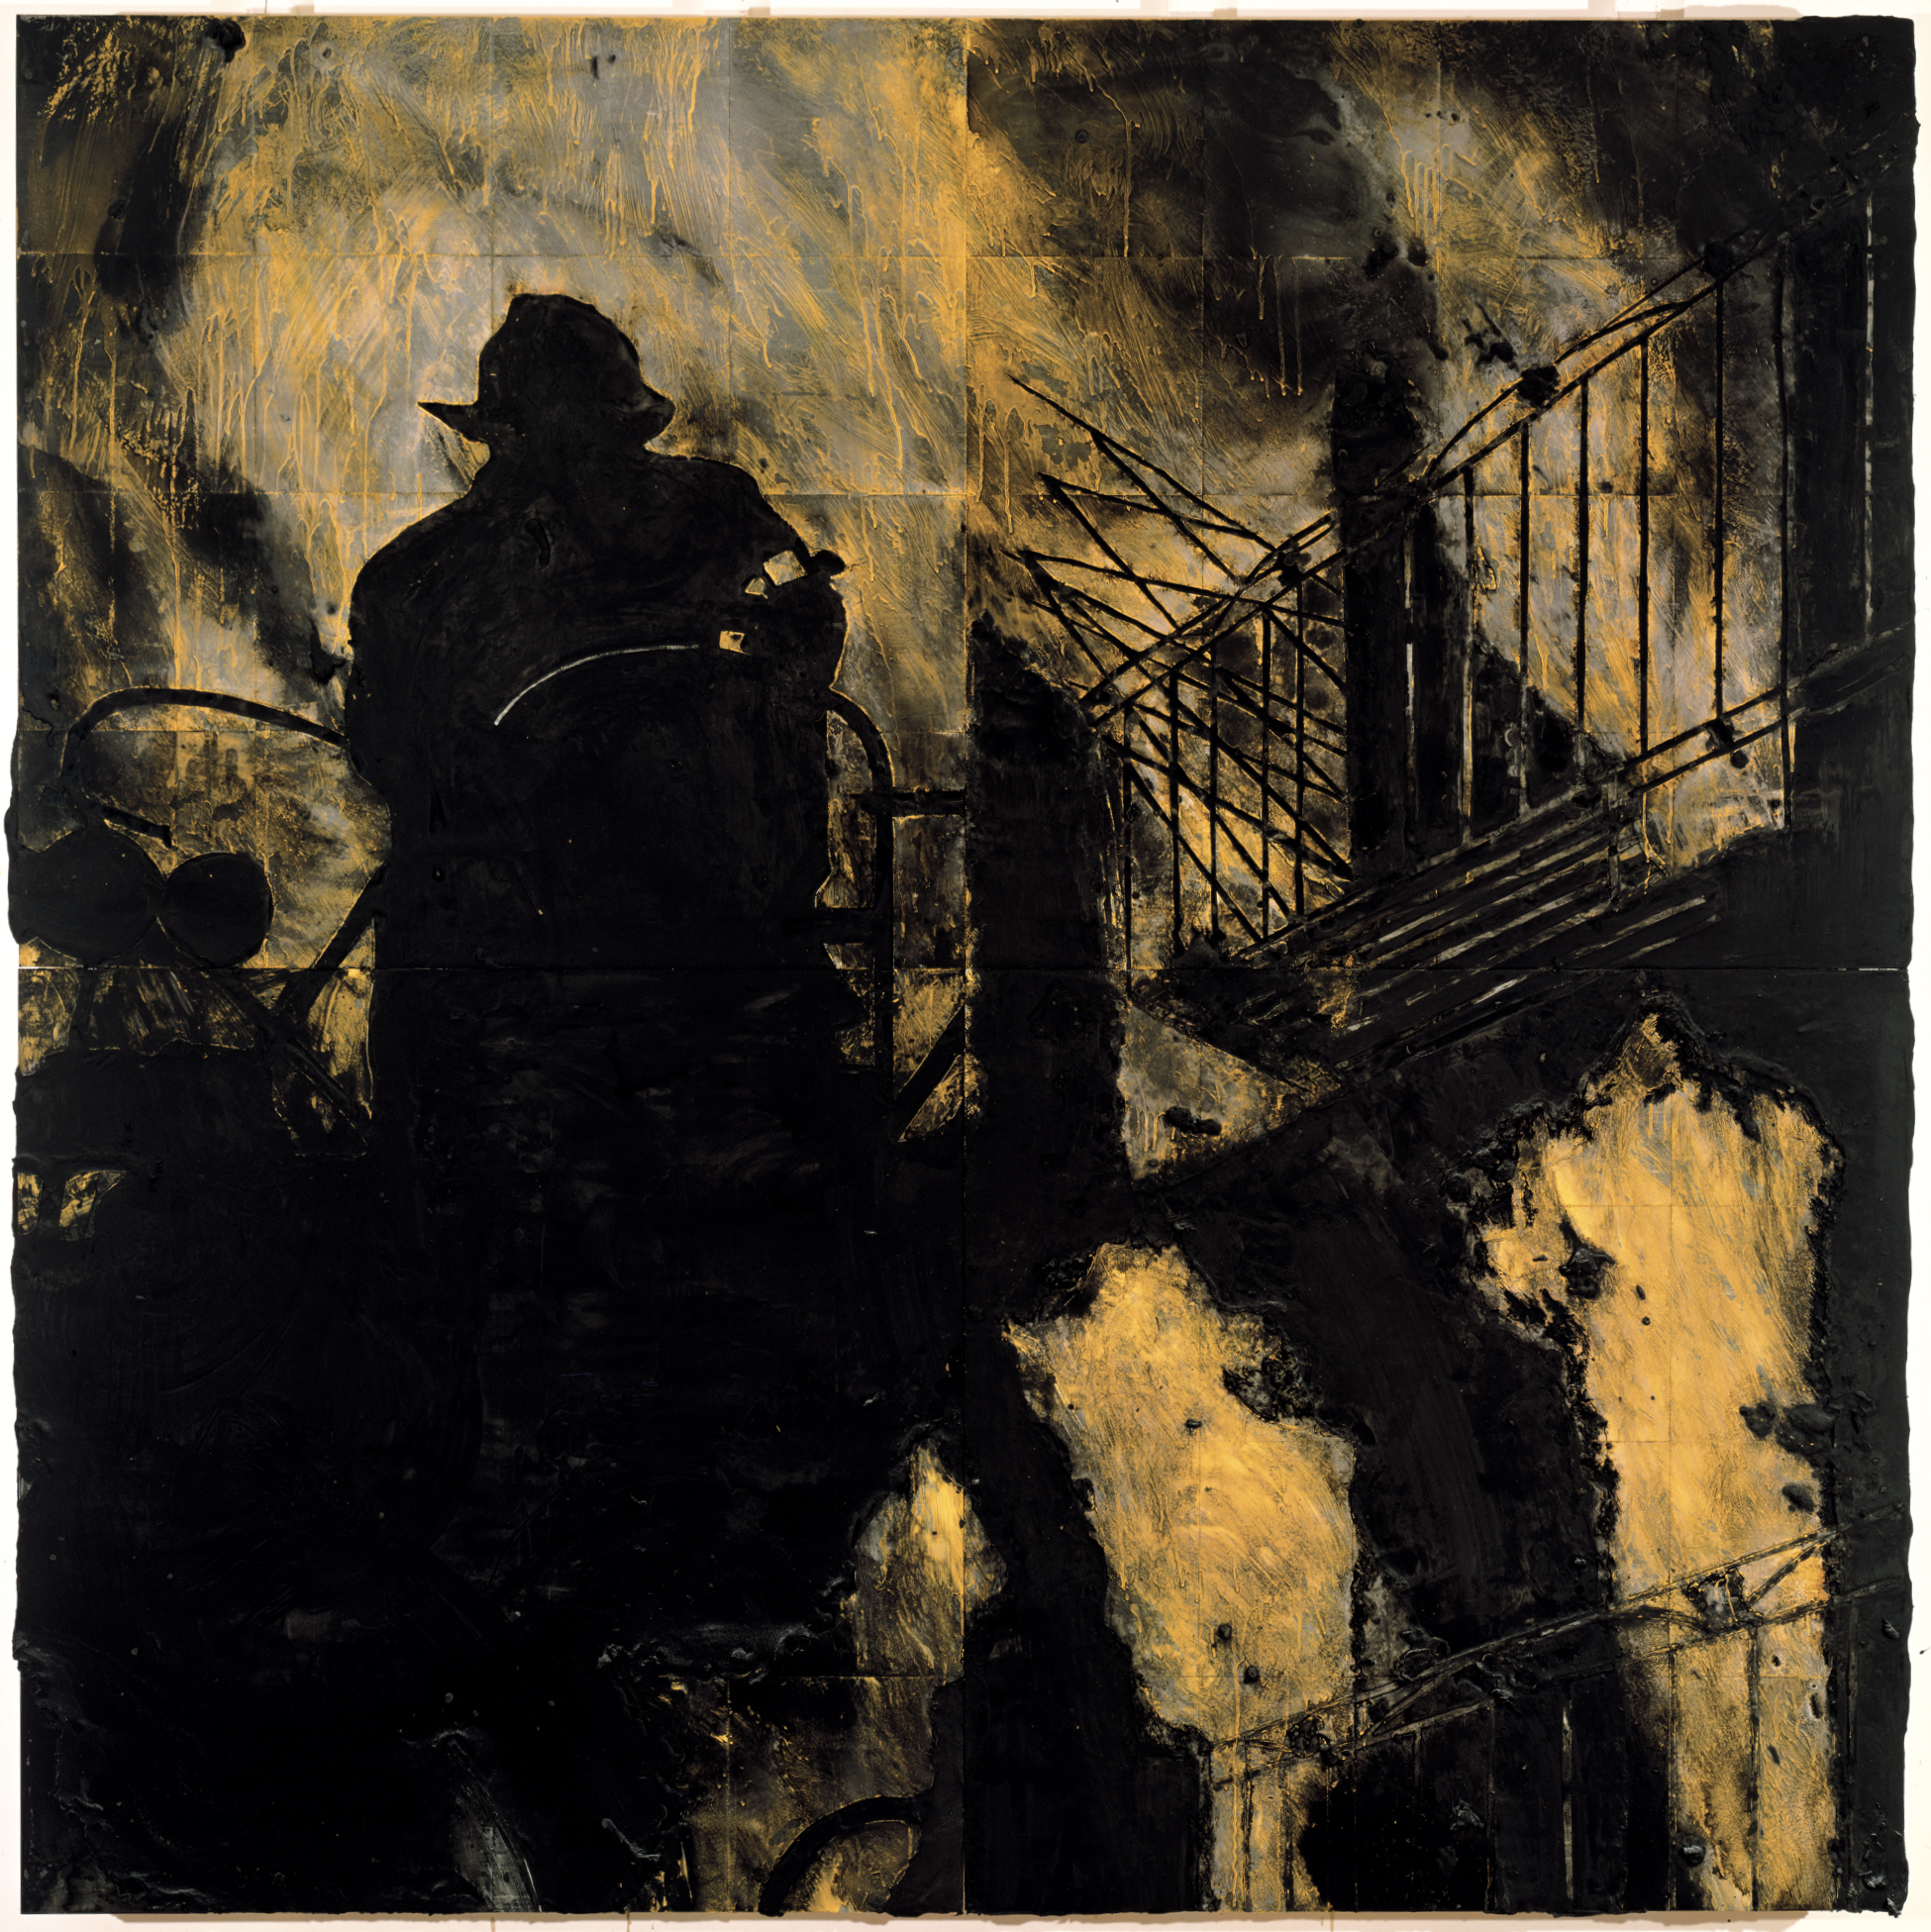 donald sultan the disaster paintings opens may 26 at the